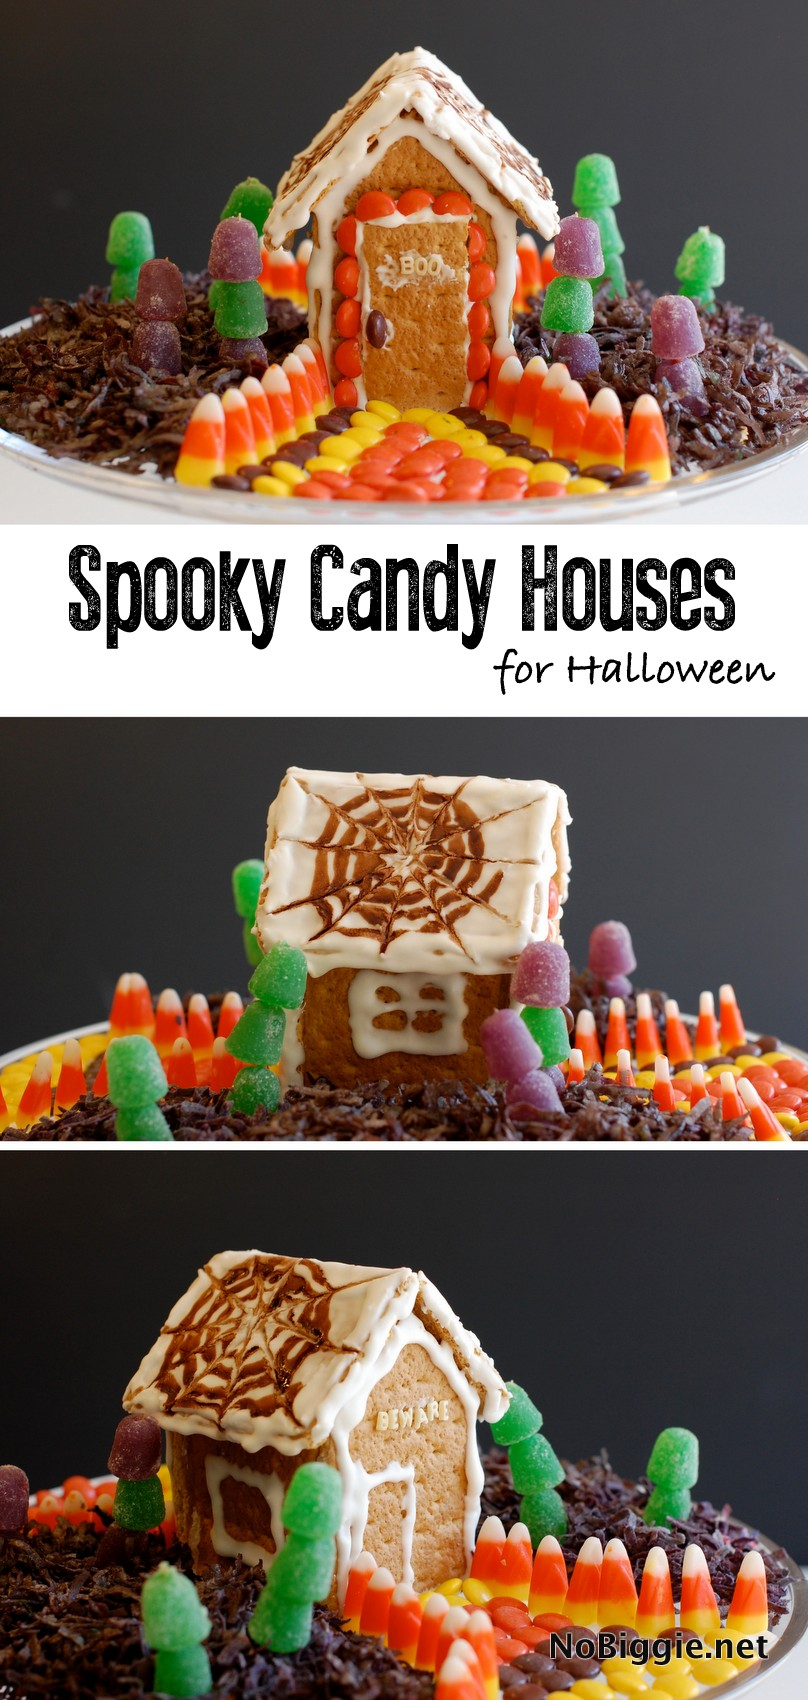 Halloween Candy House a fun and creative and edible craft for kids this Halloween. #candy #halloween #candyhouse #diytreats #halloweentreats